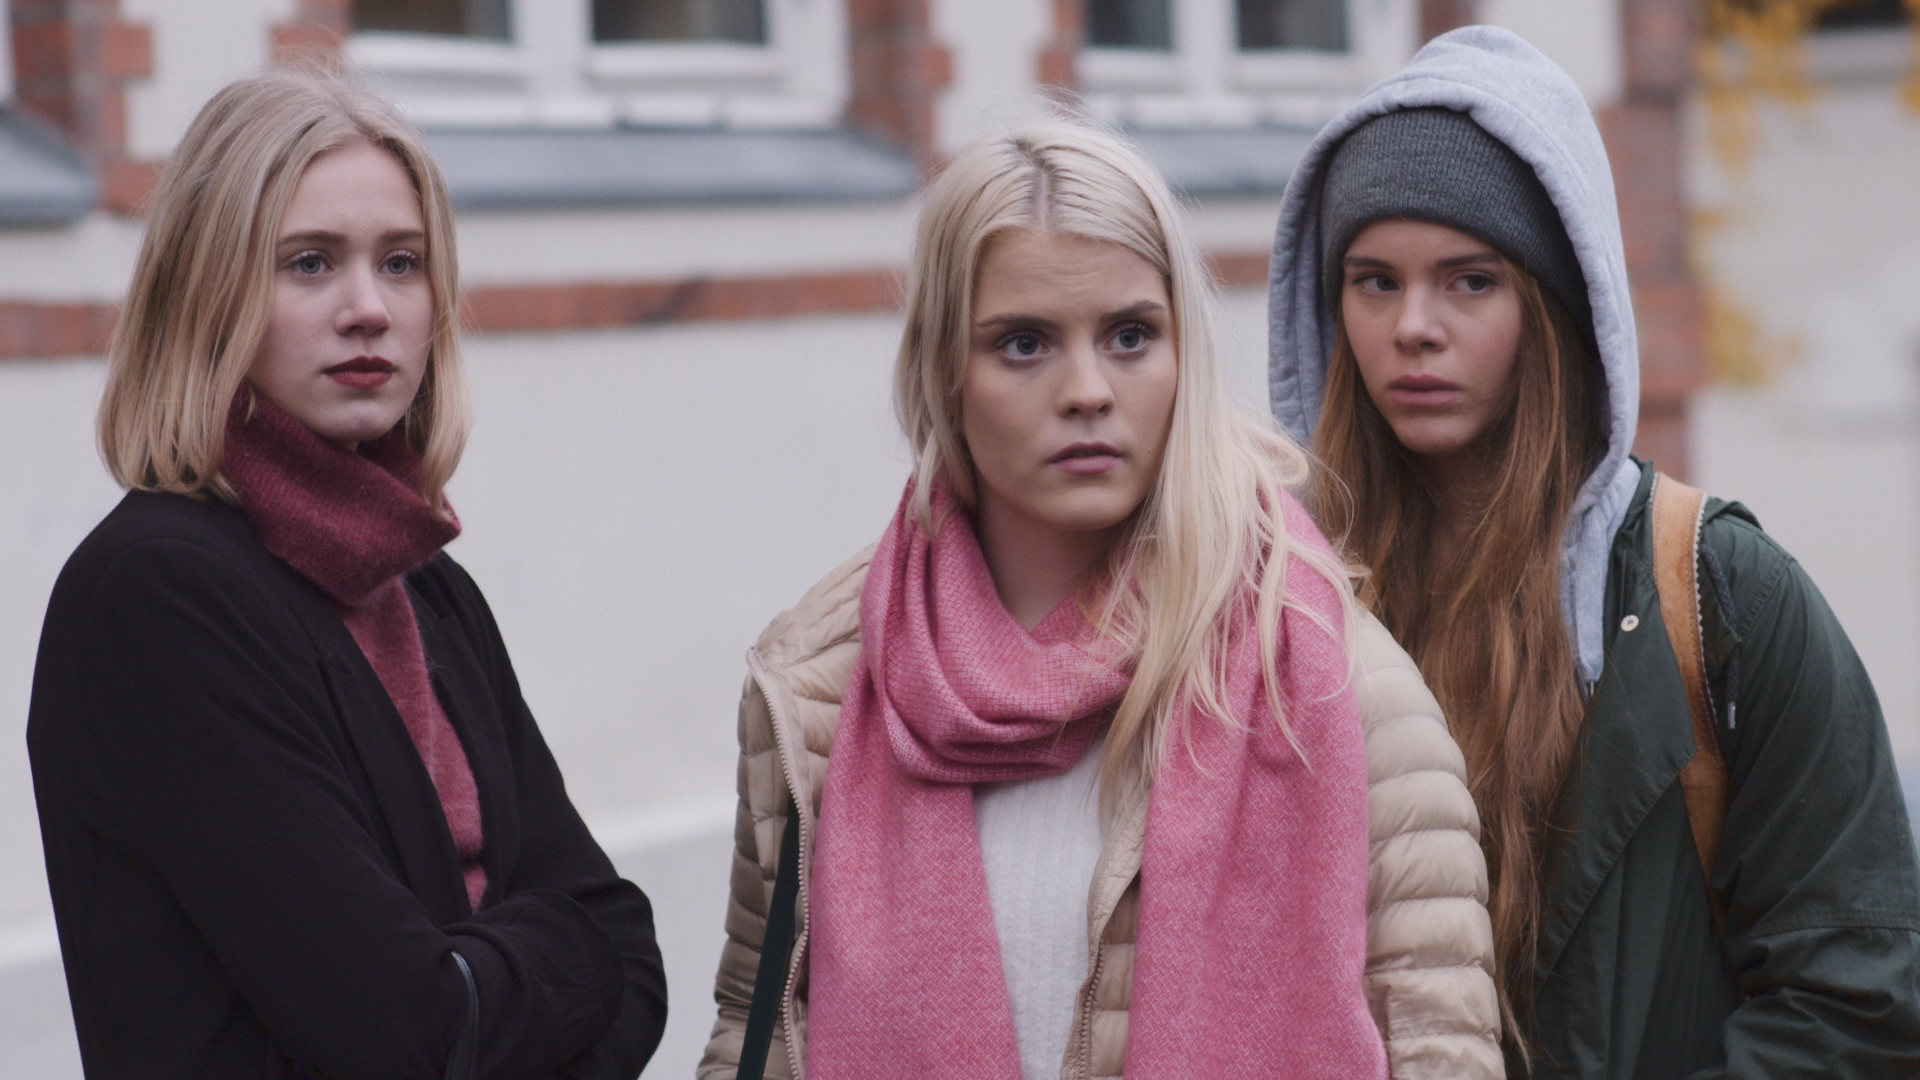 SKAM Norway. Noora, Vilde, and Eva, three teenage girls wearing coats and scarves, are standing outside school. Eva is standing just behind the other two with her jacket hood up, looking wary. Vilde and Noora are looking in the same direction, with stern expressions.